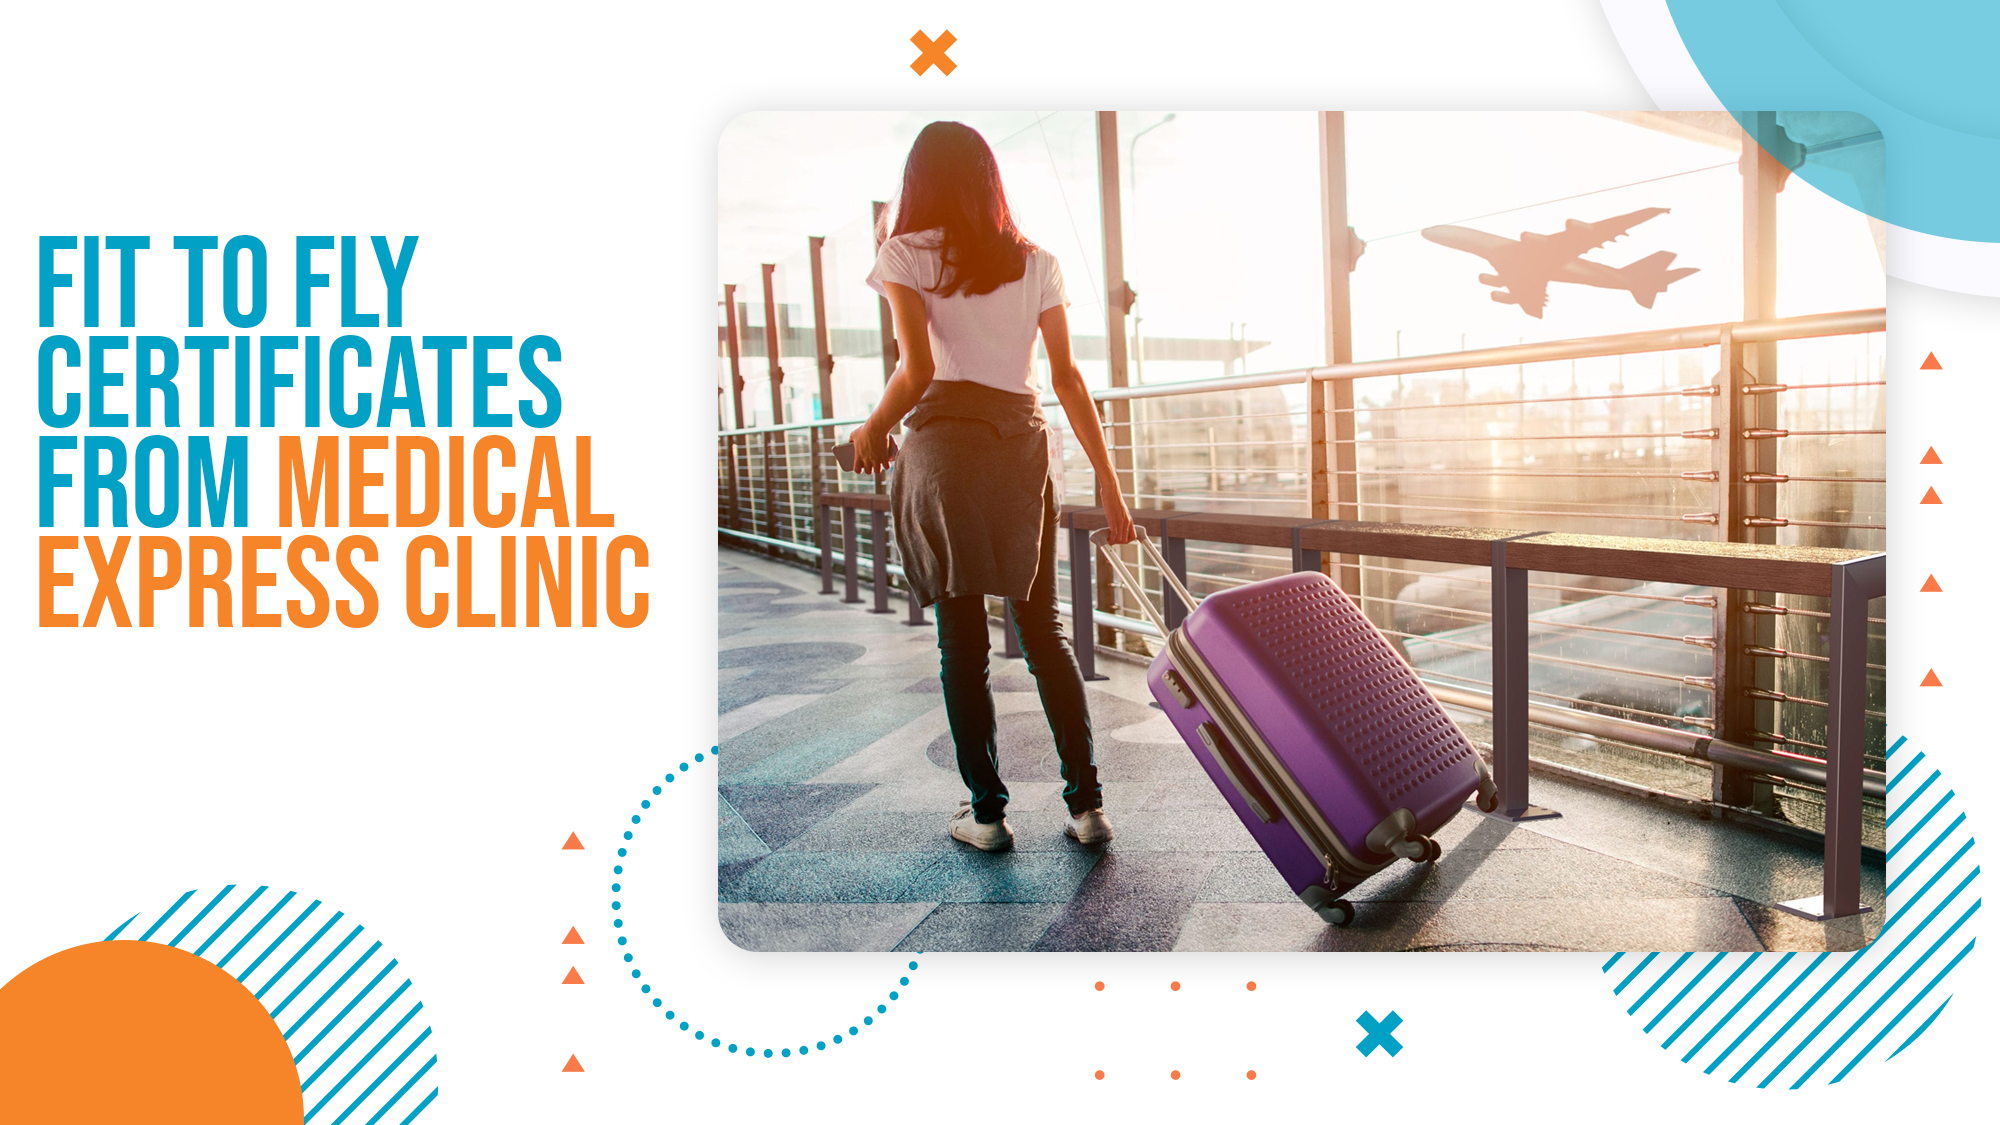 Fit To Fly Certificates from Medical Express Clinic UK